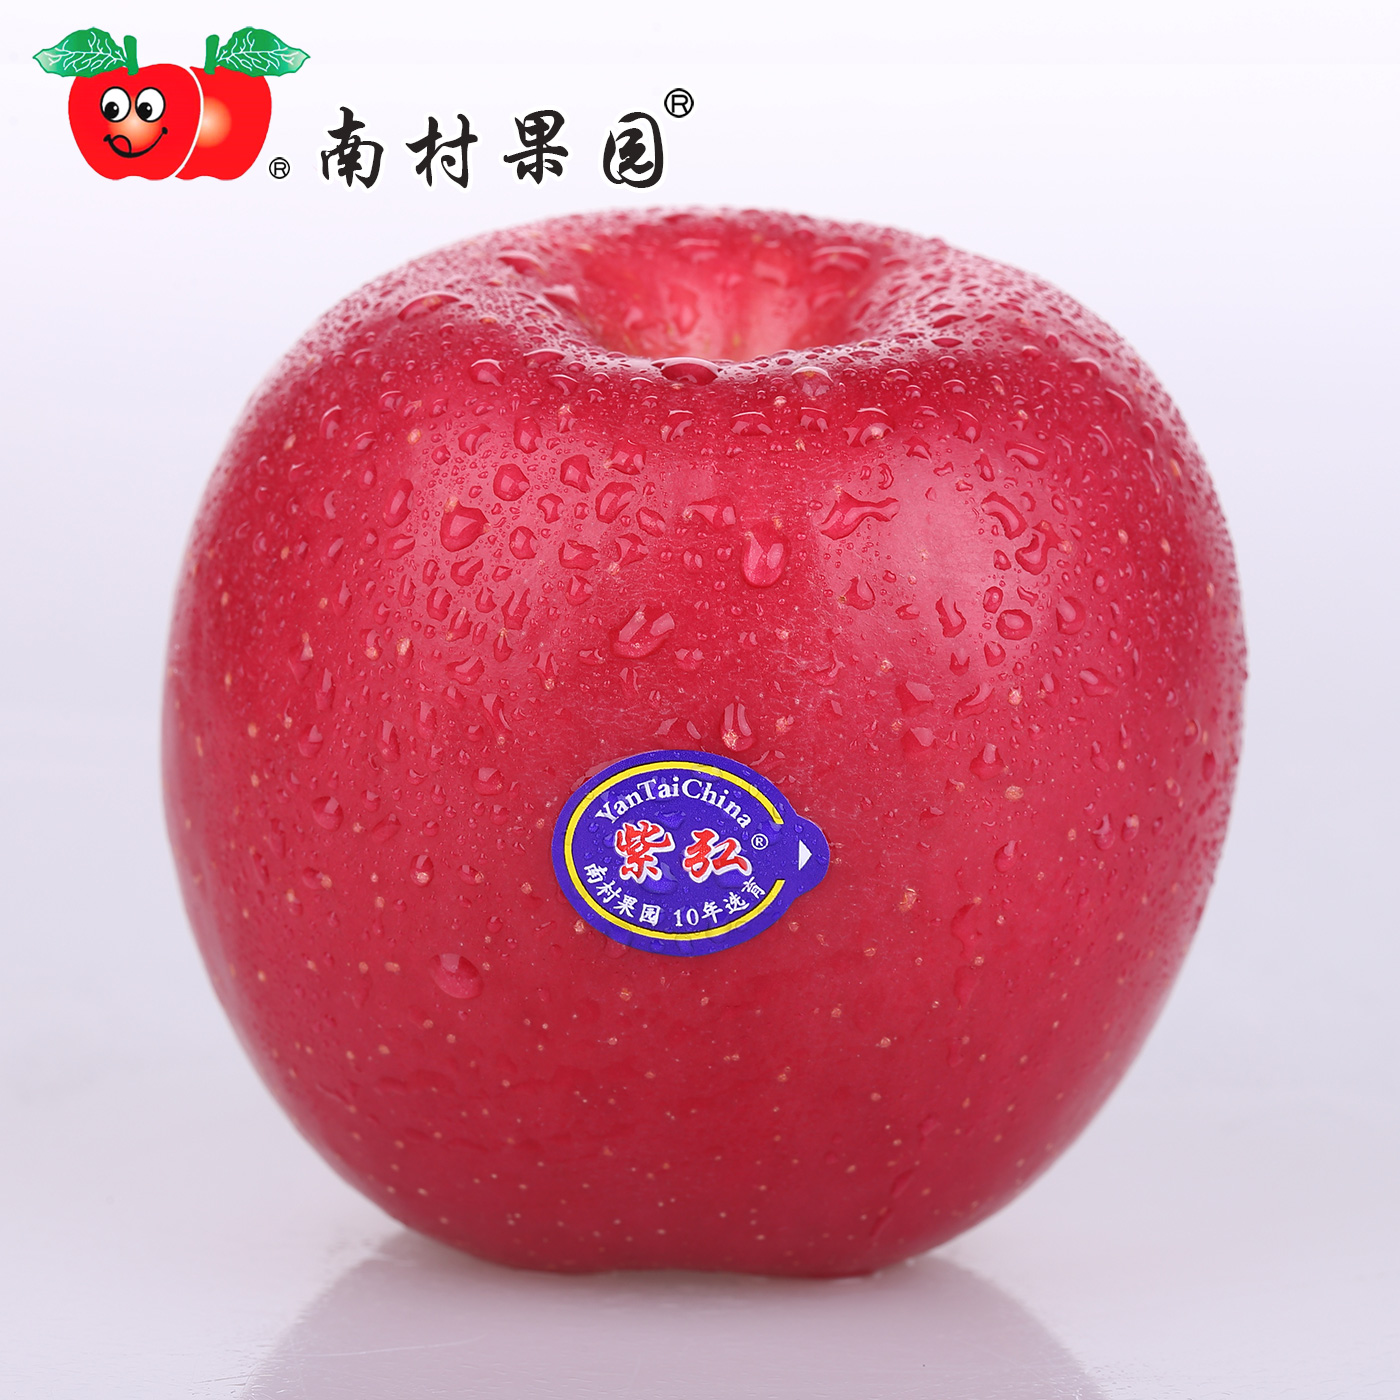 Yantai Red Fuji fine apple, Nancun orchard, Zihong, 8 Jin, 12 grains, Qixia special fresh fruit apple